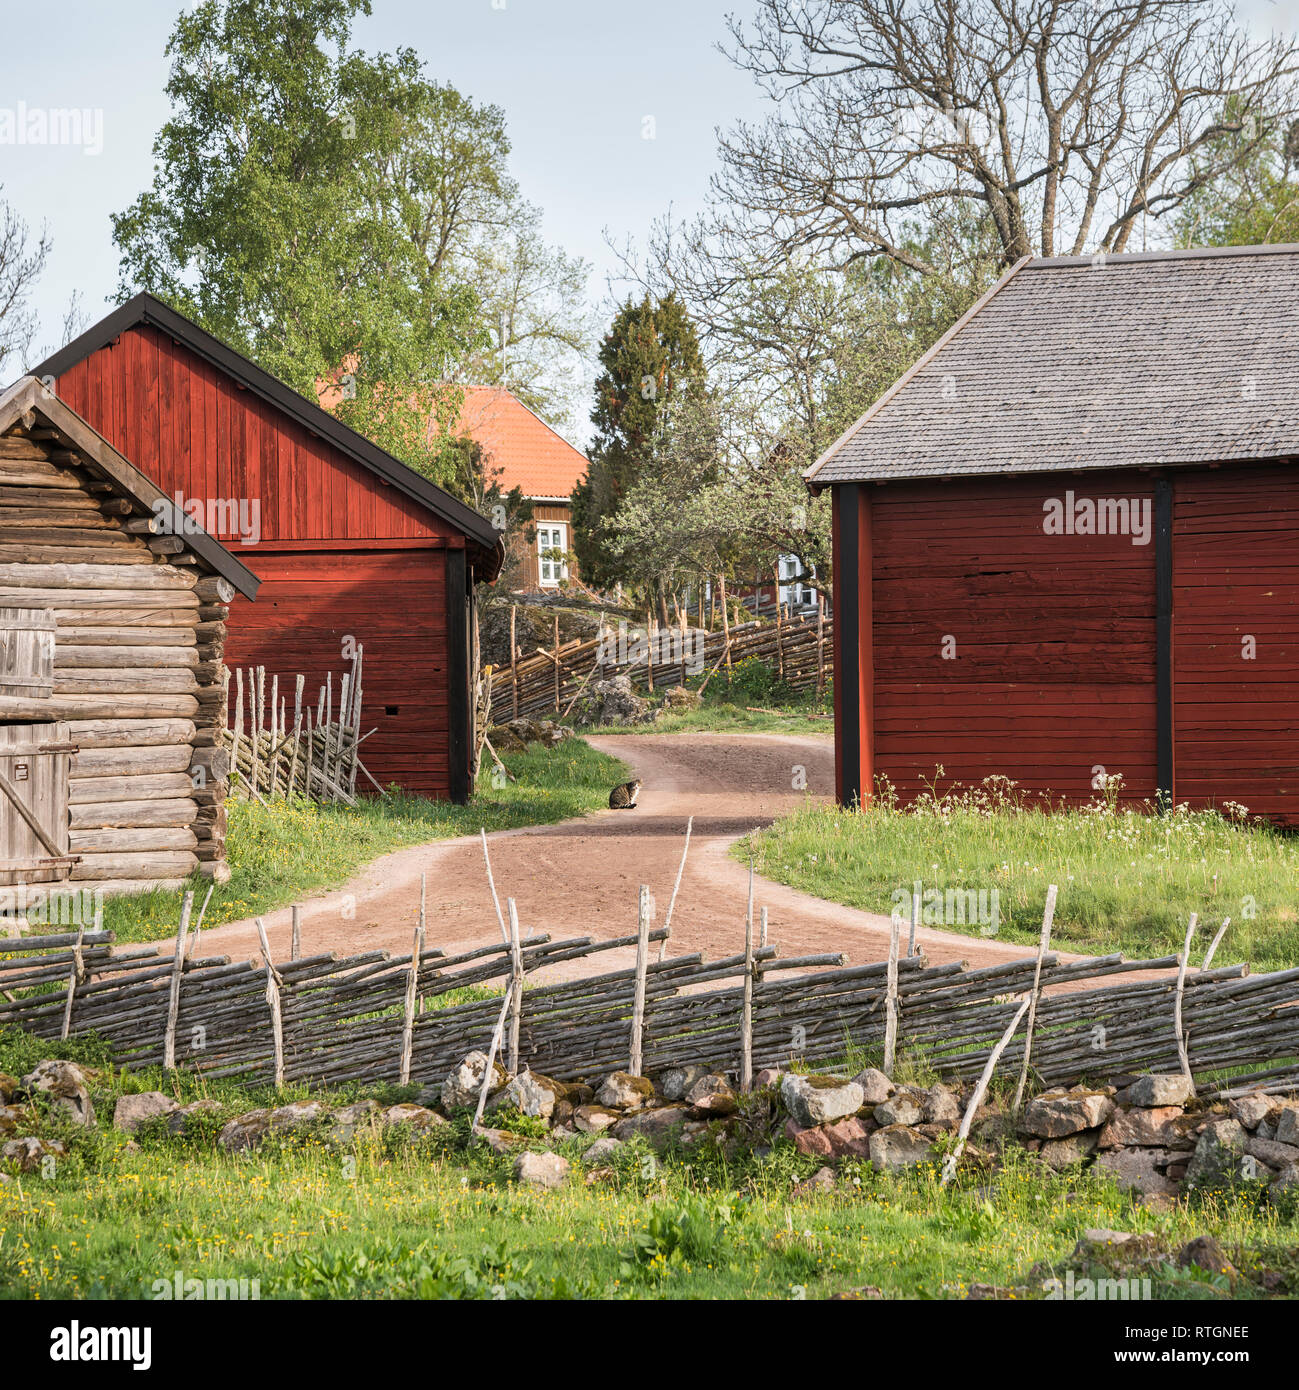 Cat on country road at an old farm house and traditional roundpole fence in  the rural  village of Stensjo in Smaland, Sweden, Scandinavia - Stock Image